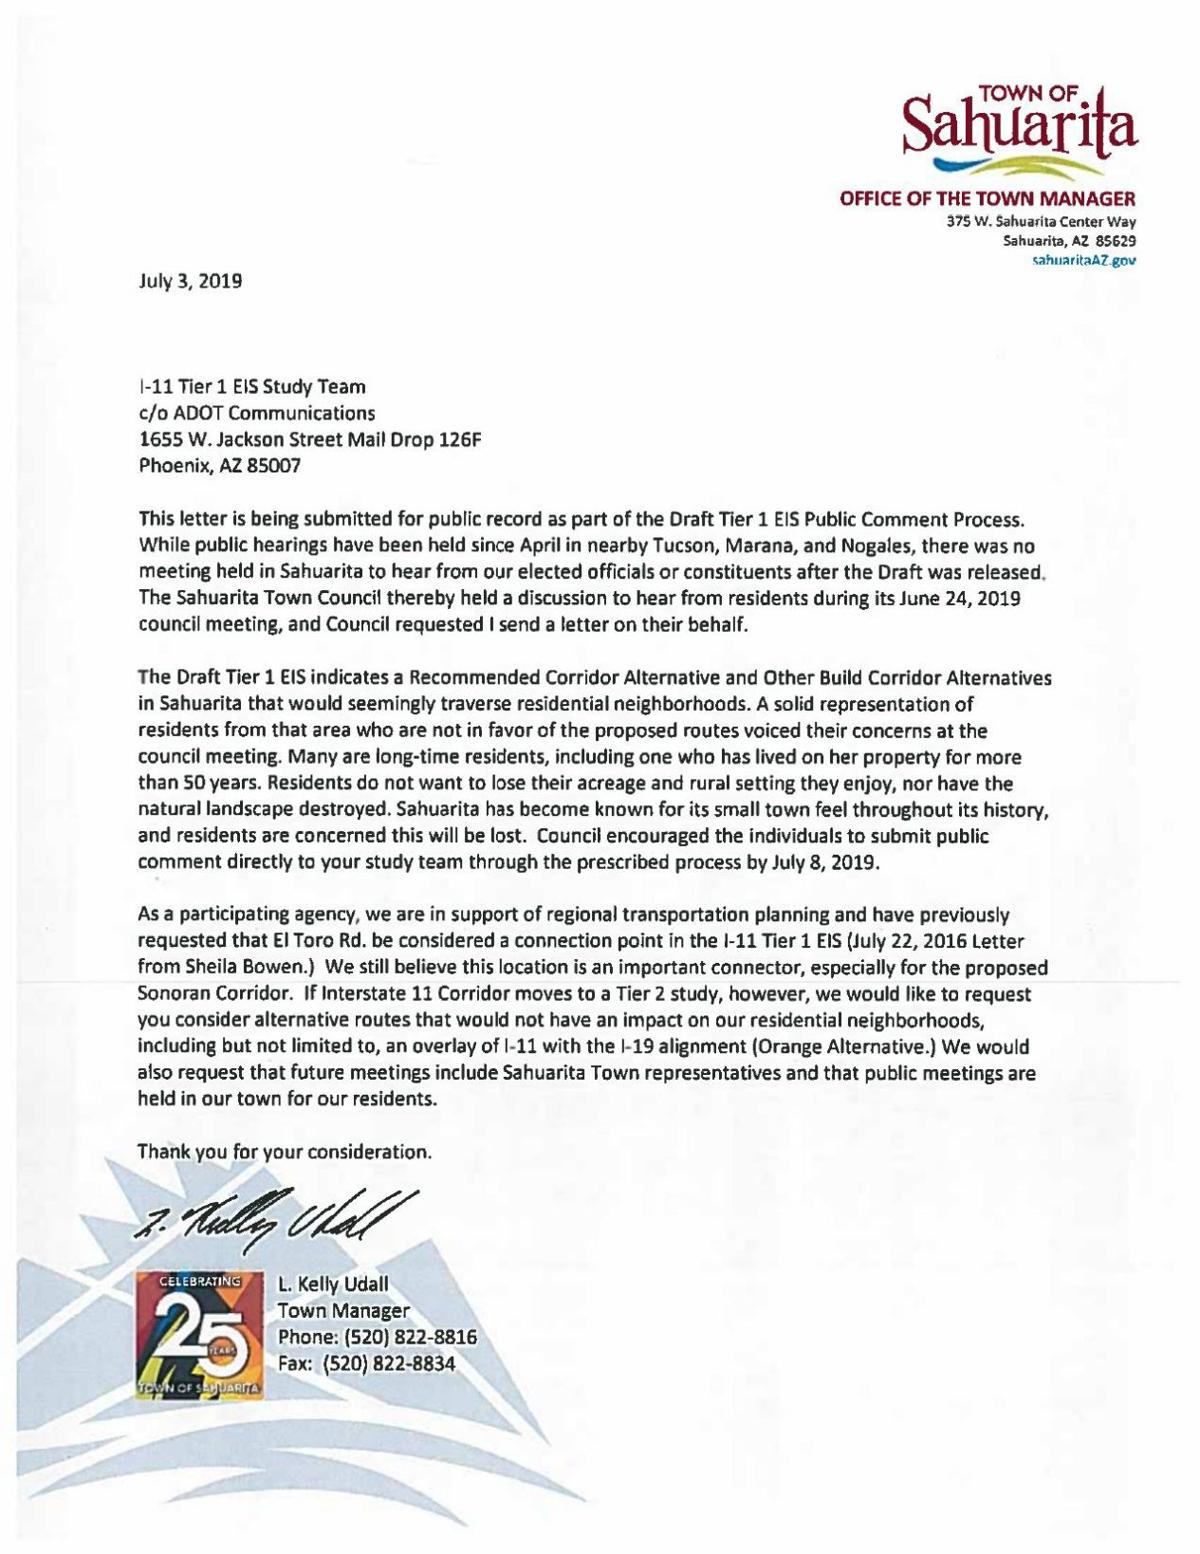 Town letter to ADOT